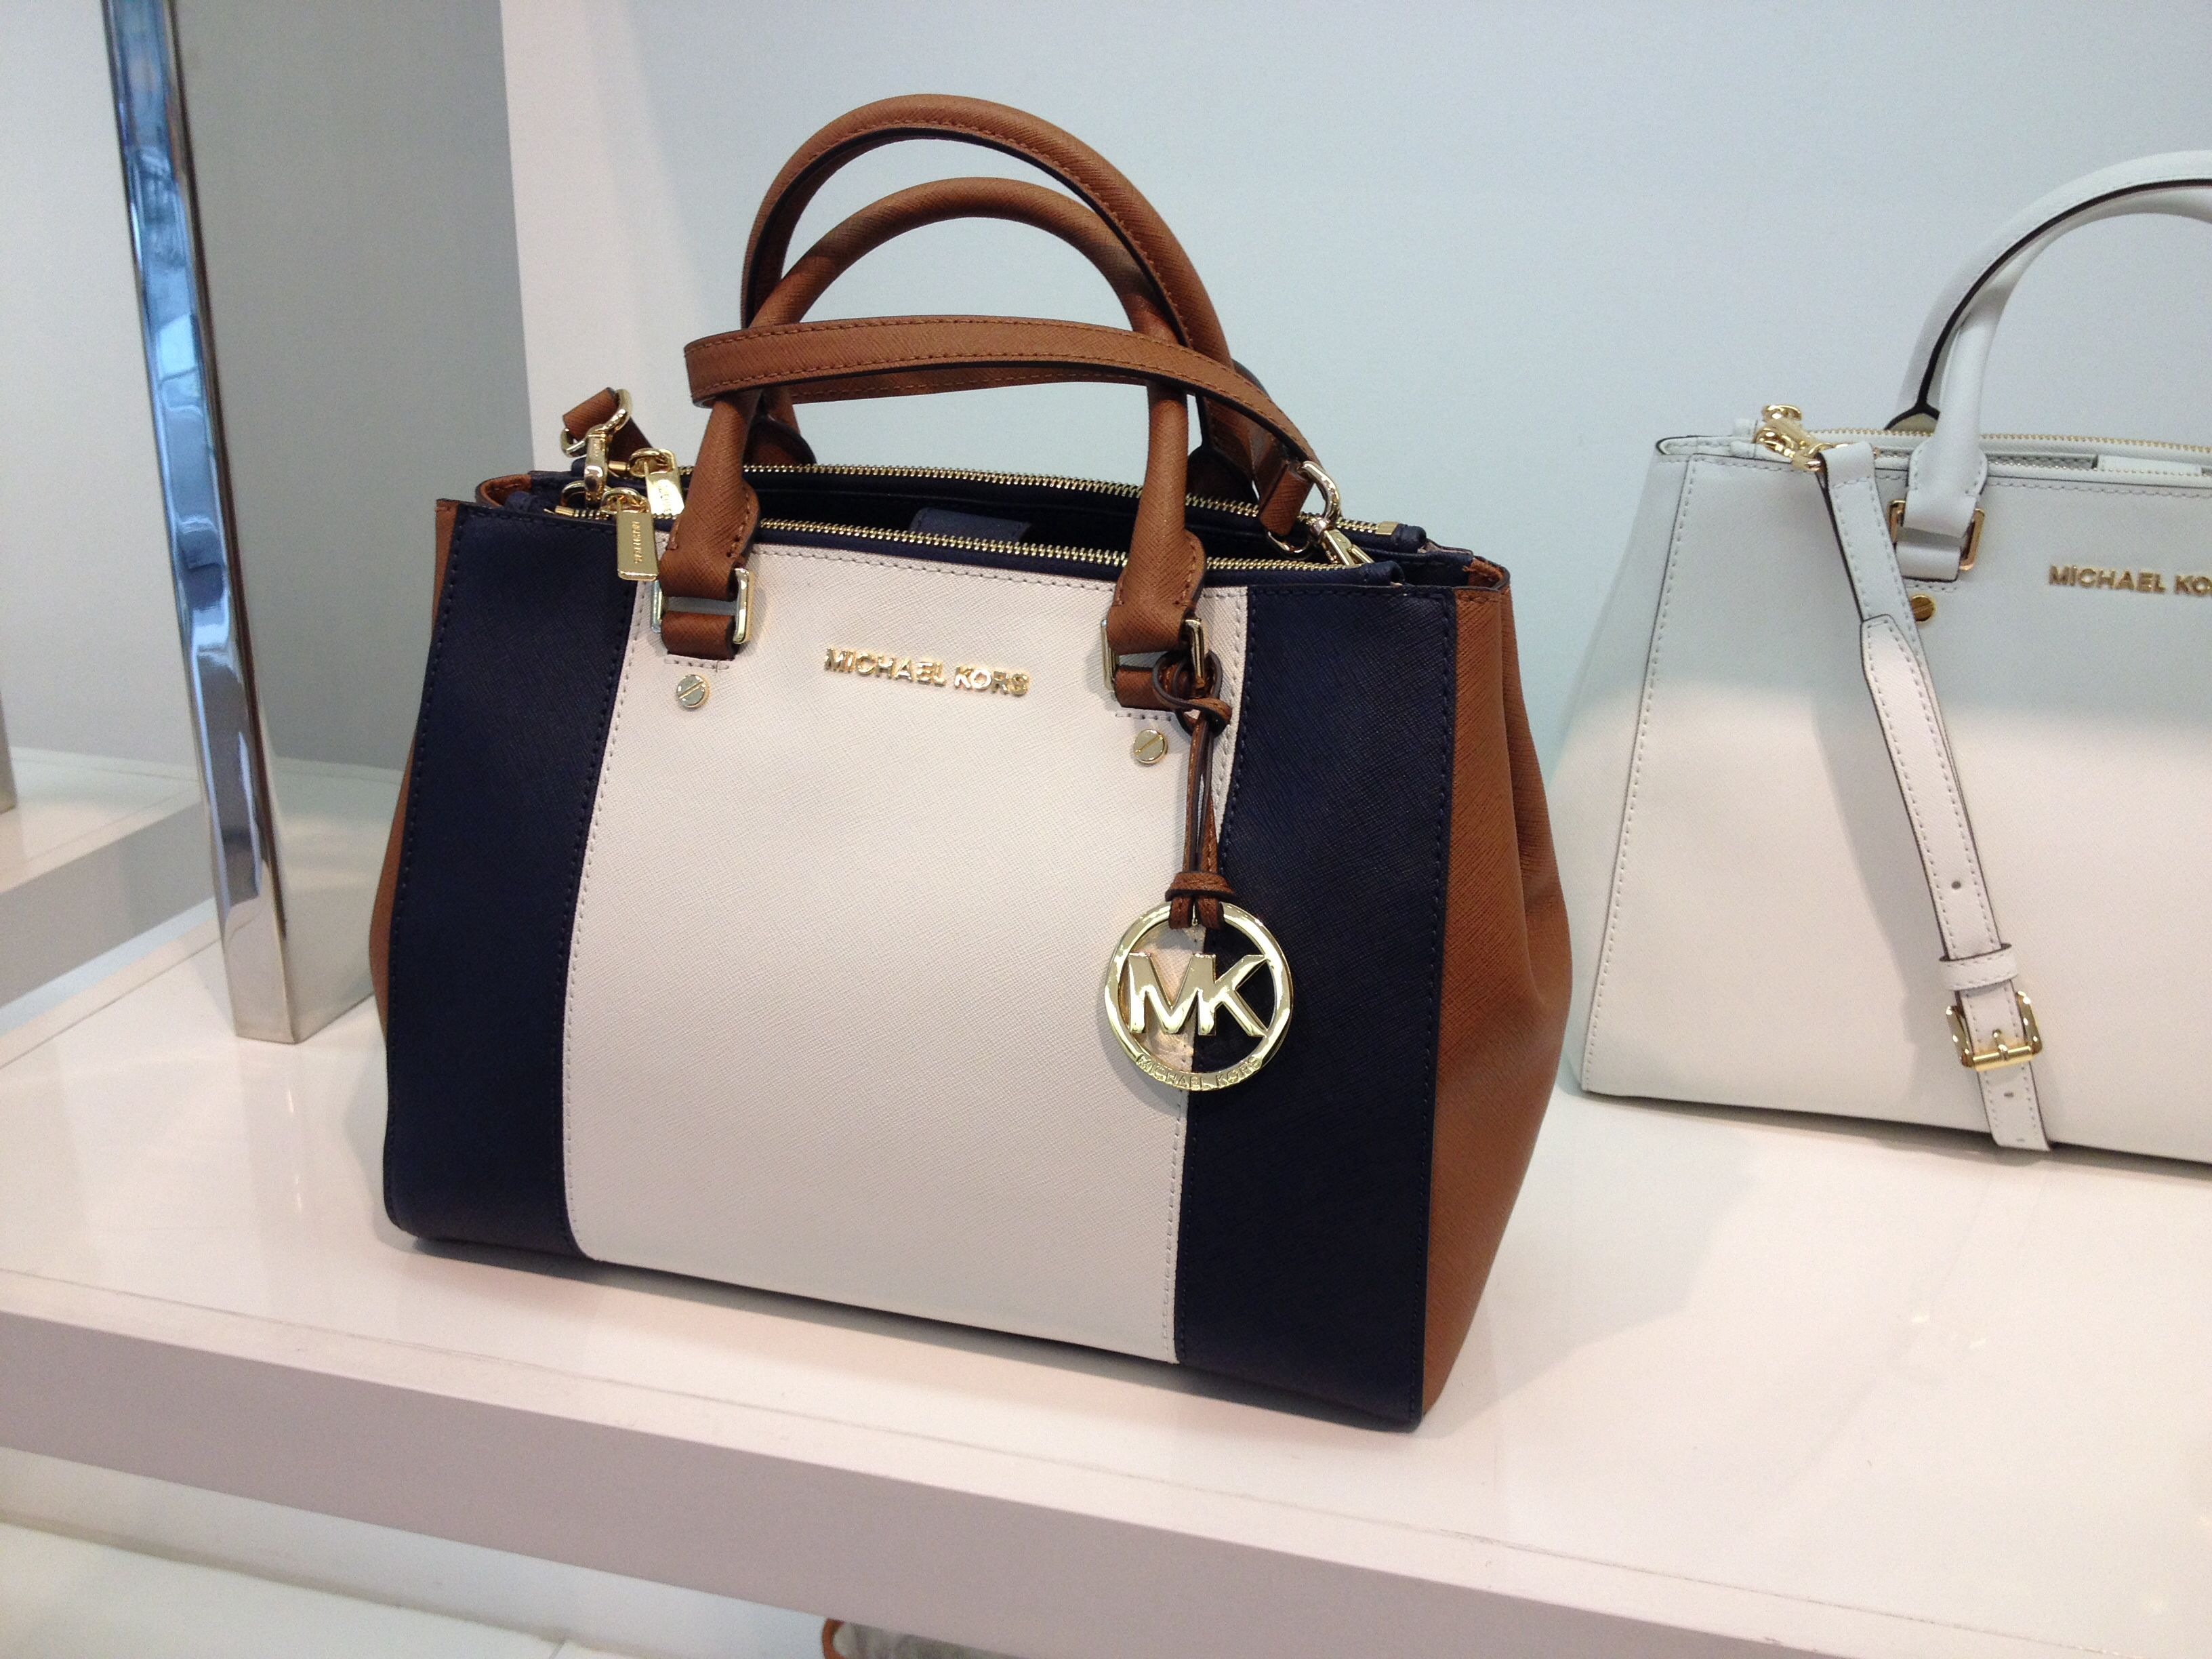 Michael kors bags in dubai - Absolutely Love This Bag By Michael Kors Sutton Cntr Stripe